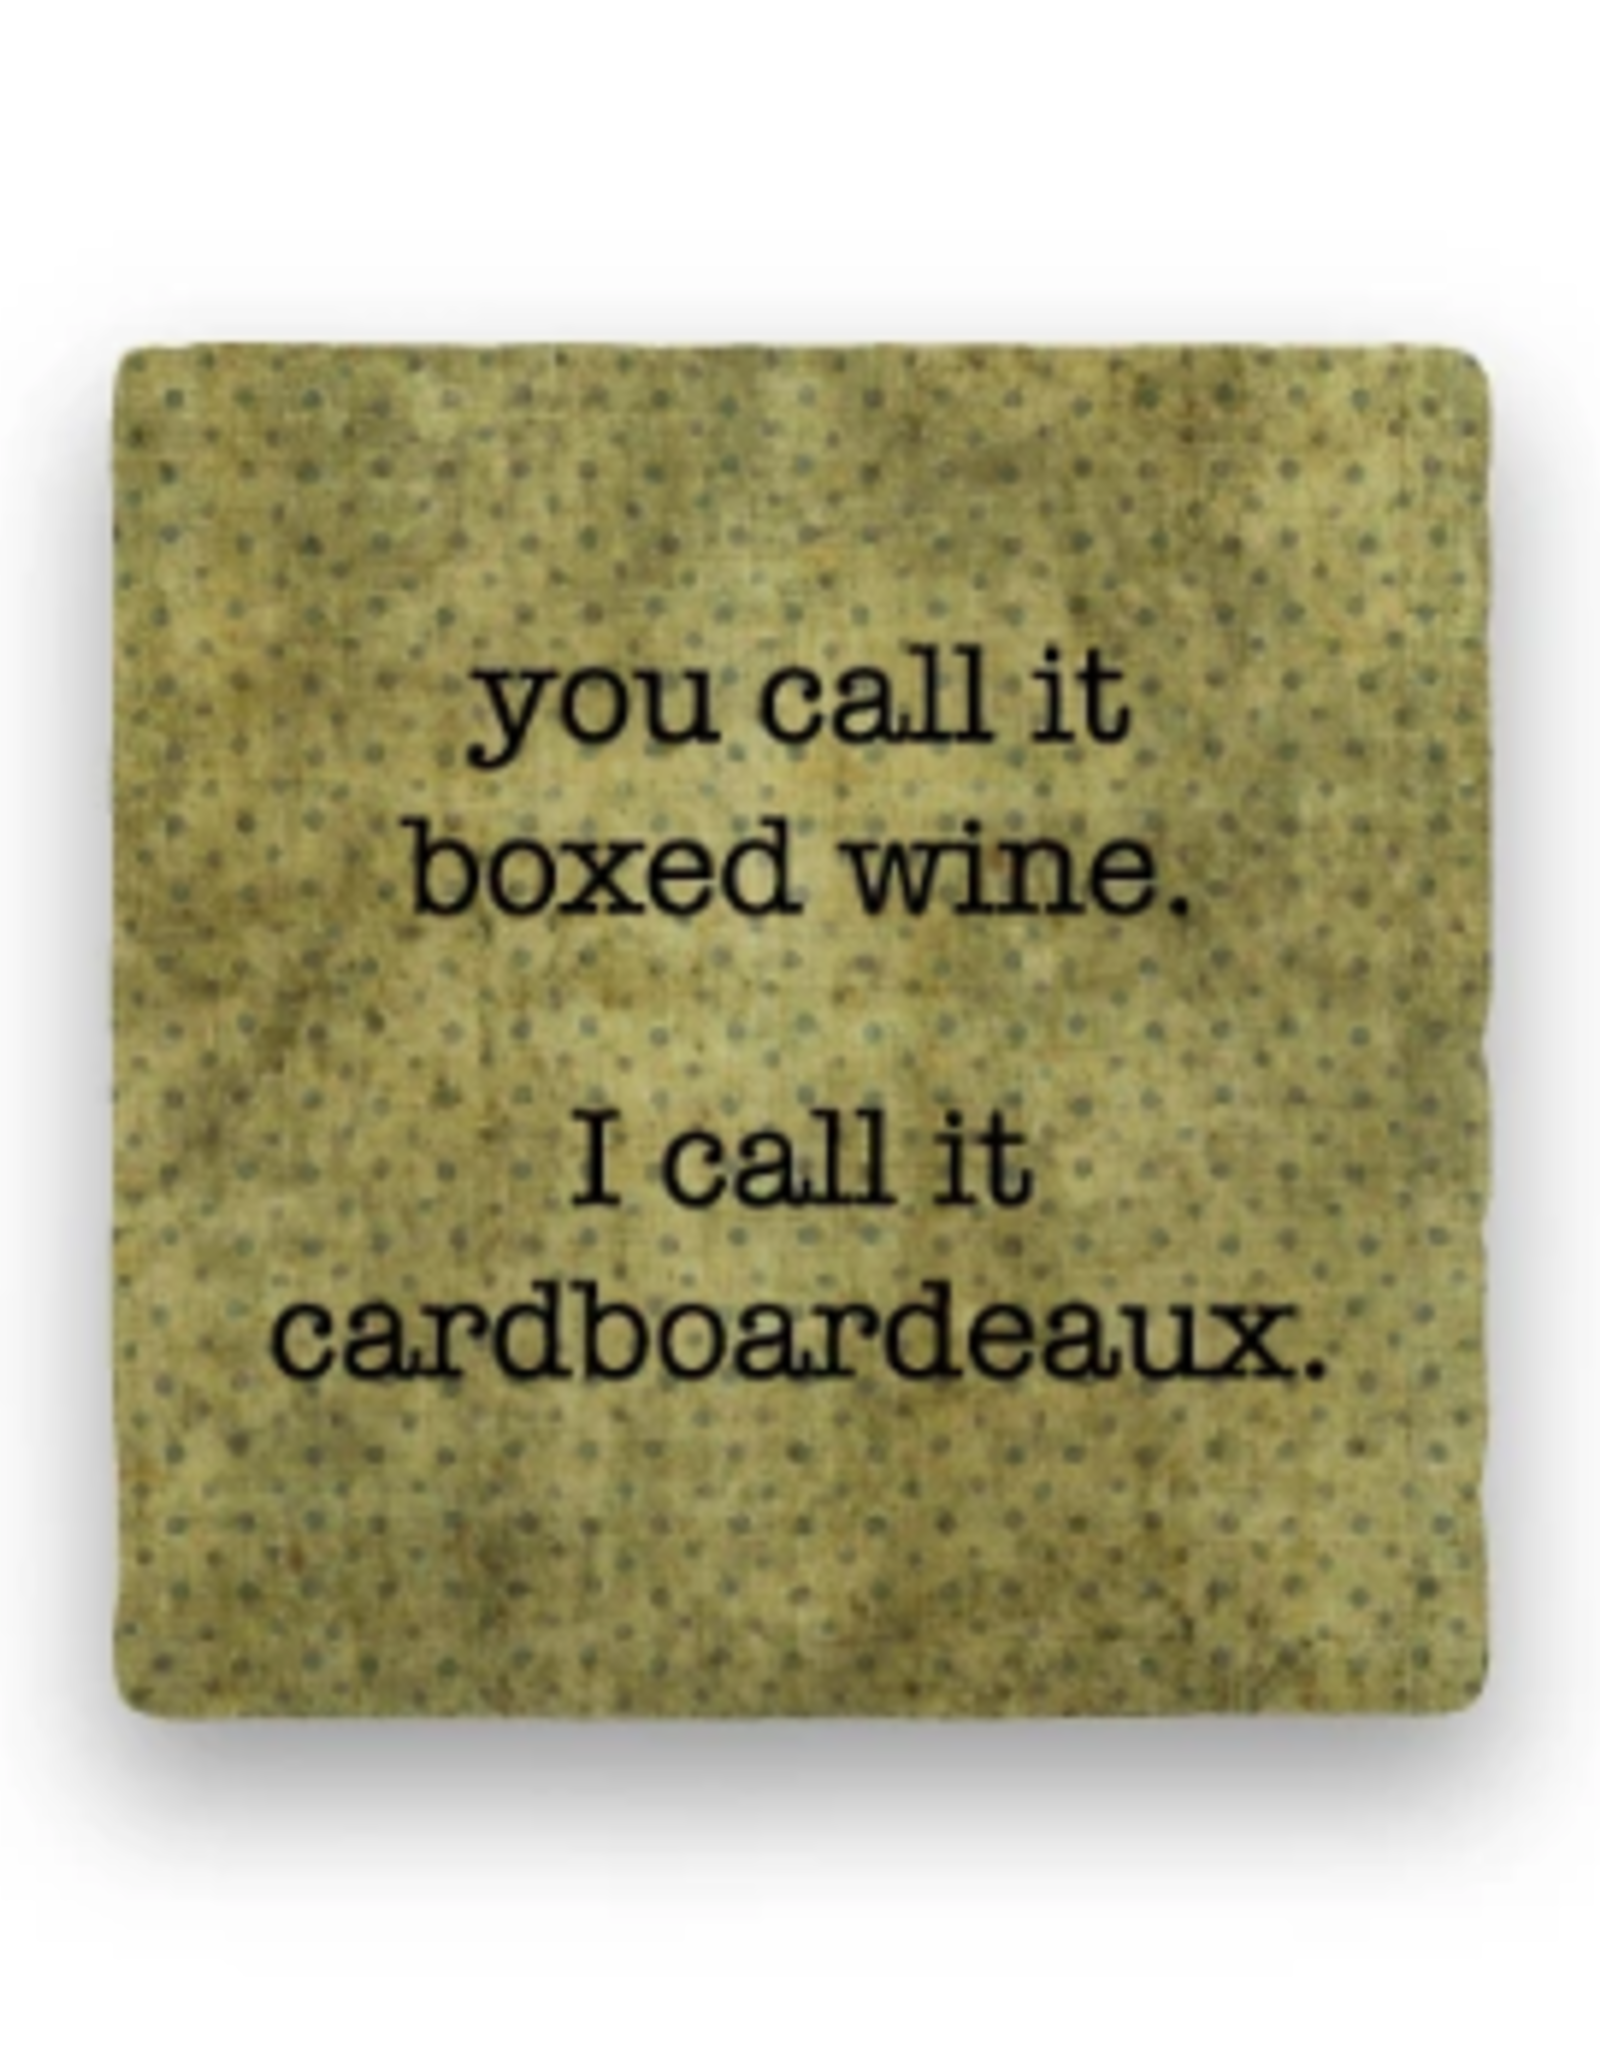 Paisley & Parsley Designs Coaster, Cardboardeaux